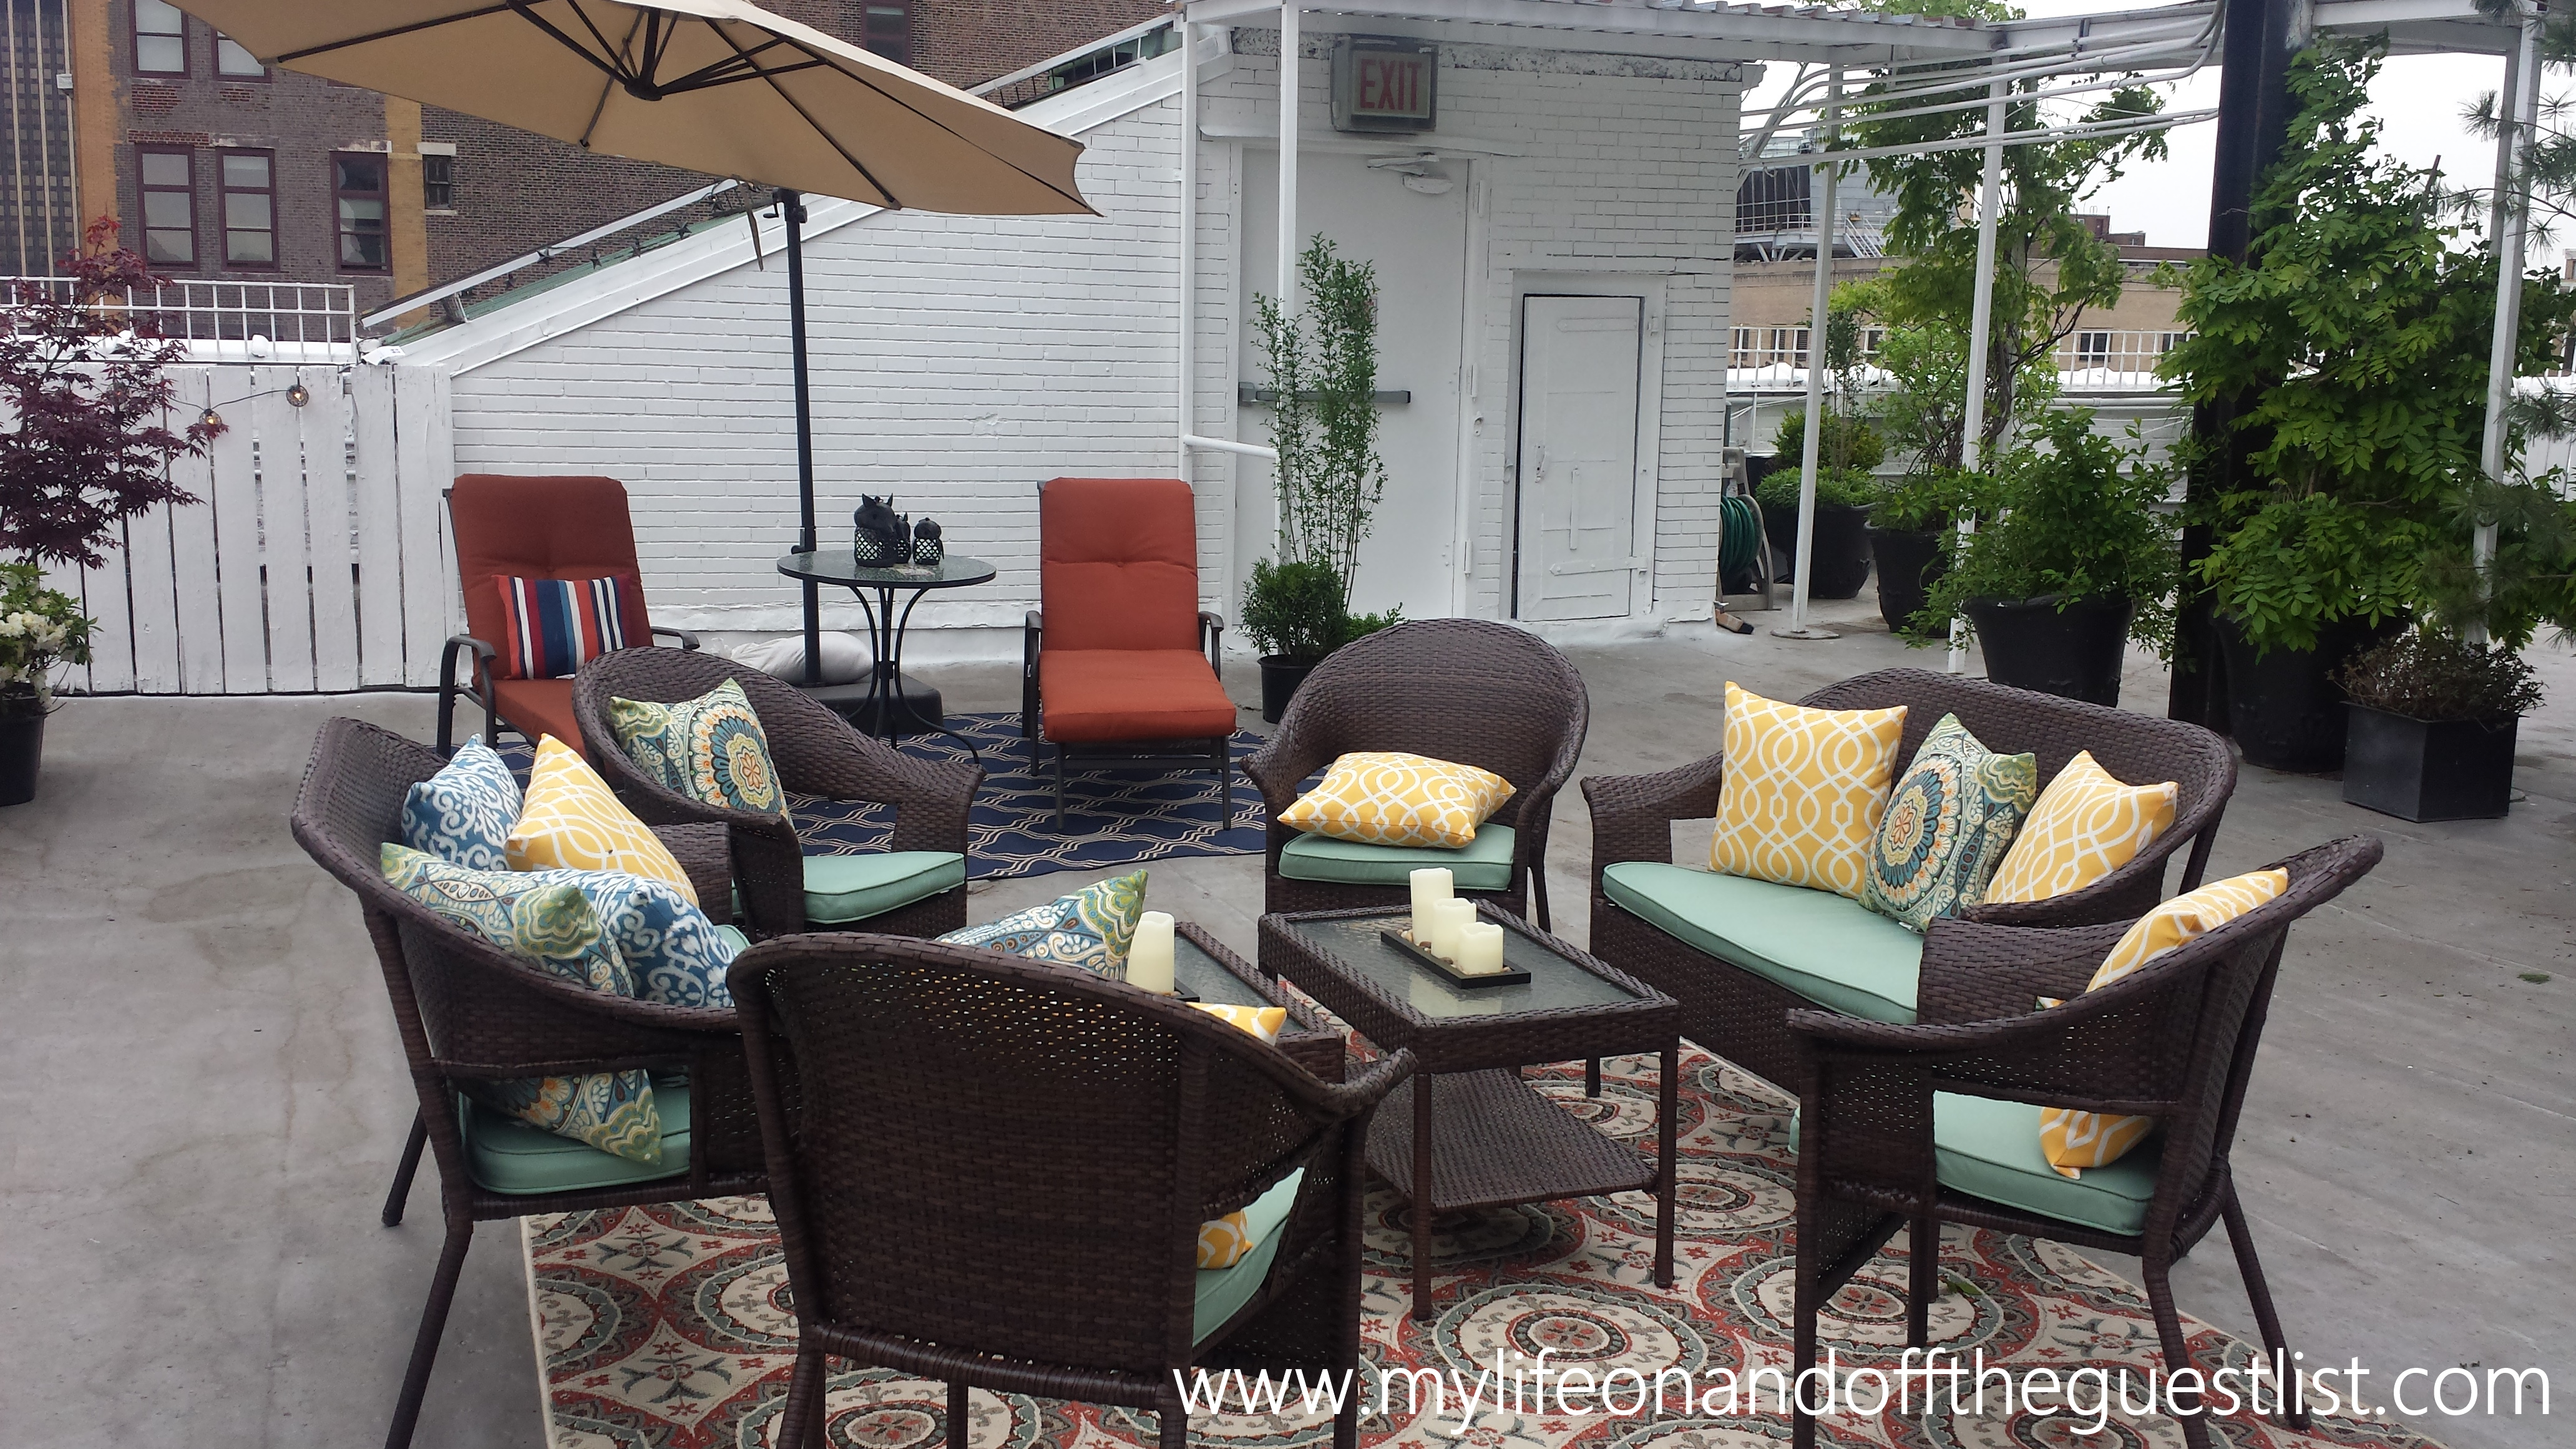 & Enhance Your Outdoor Space with Patio Furniture from Kmart